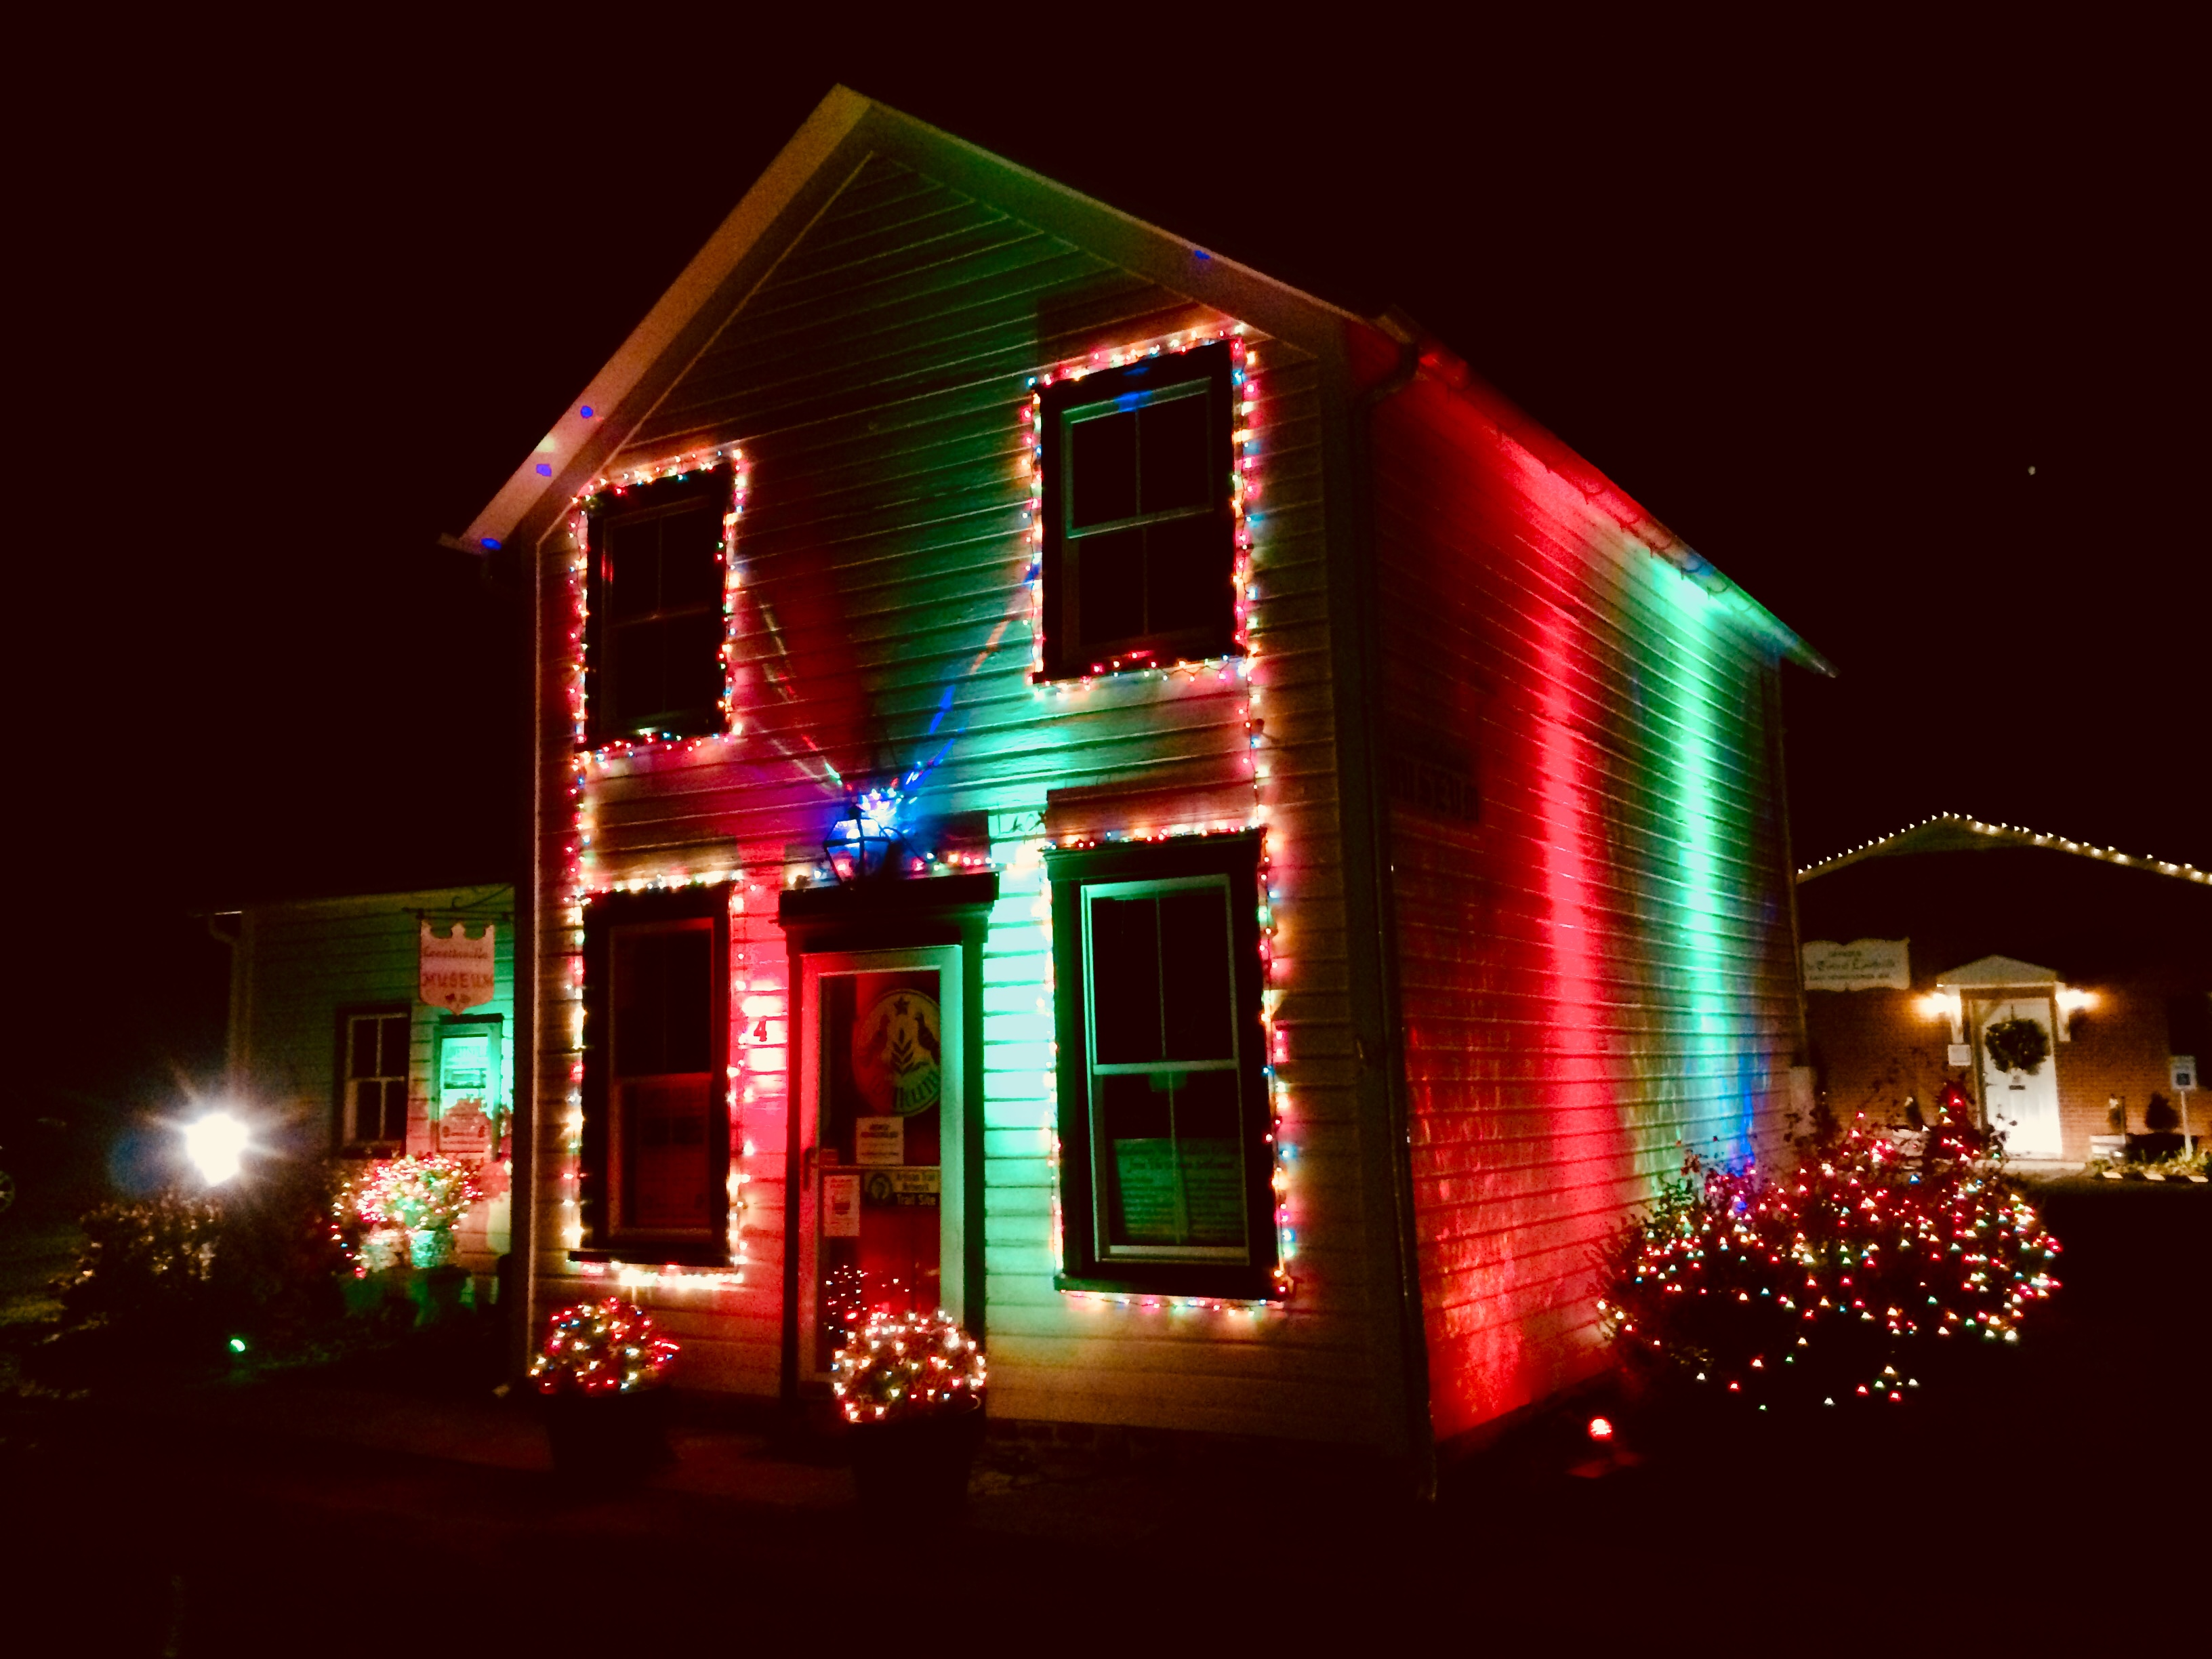 2017 Lovettsville Museum Illuminated at Christmas